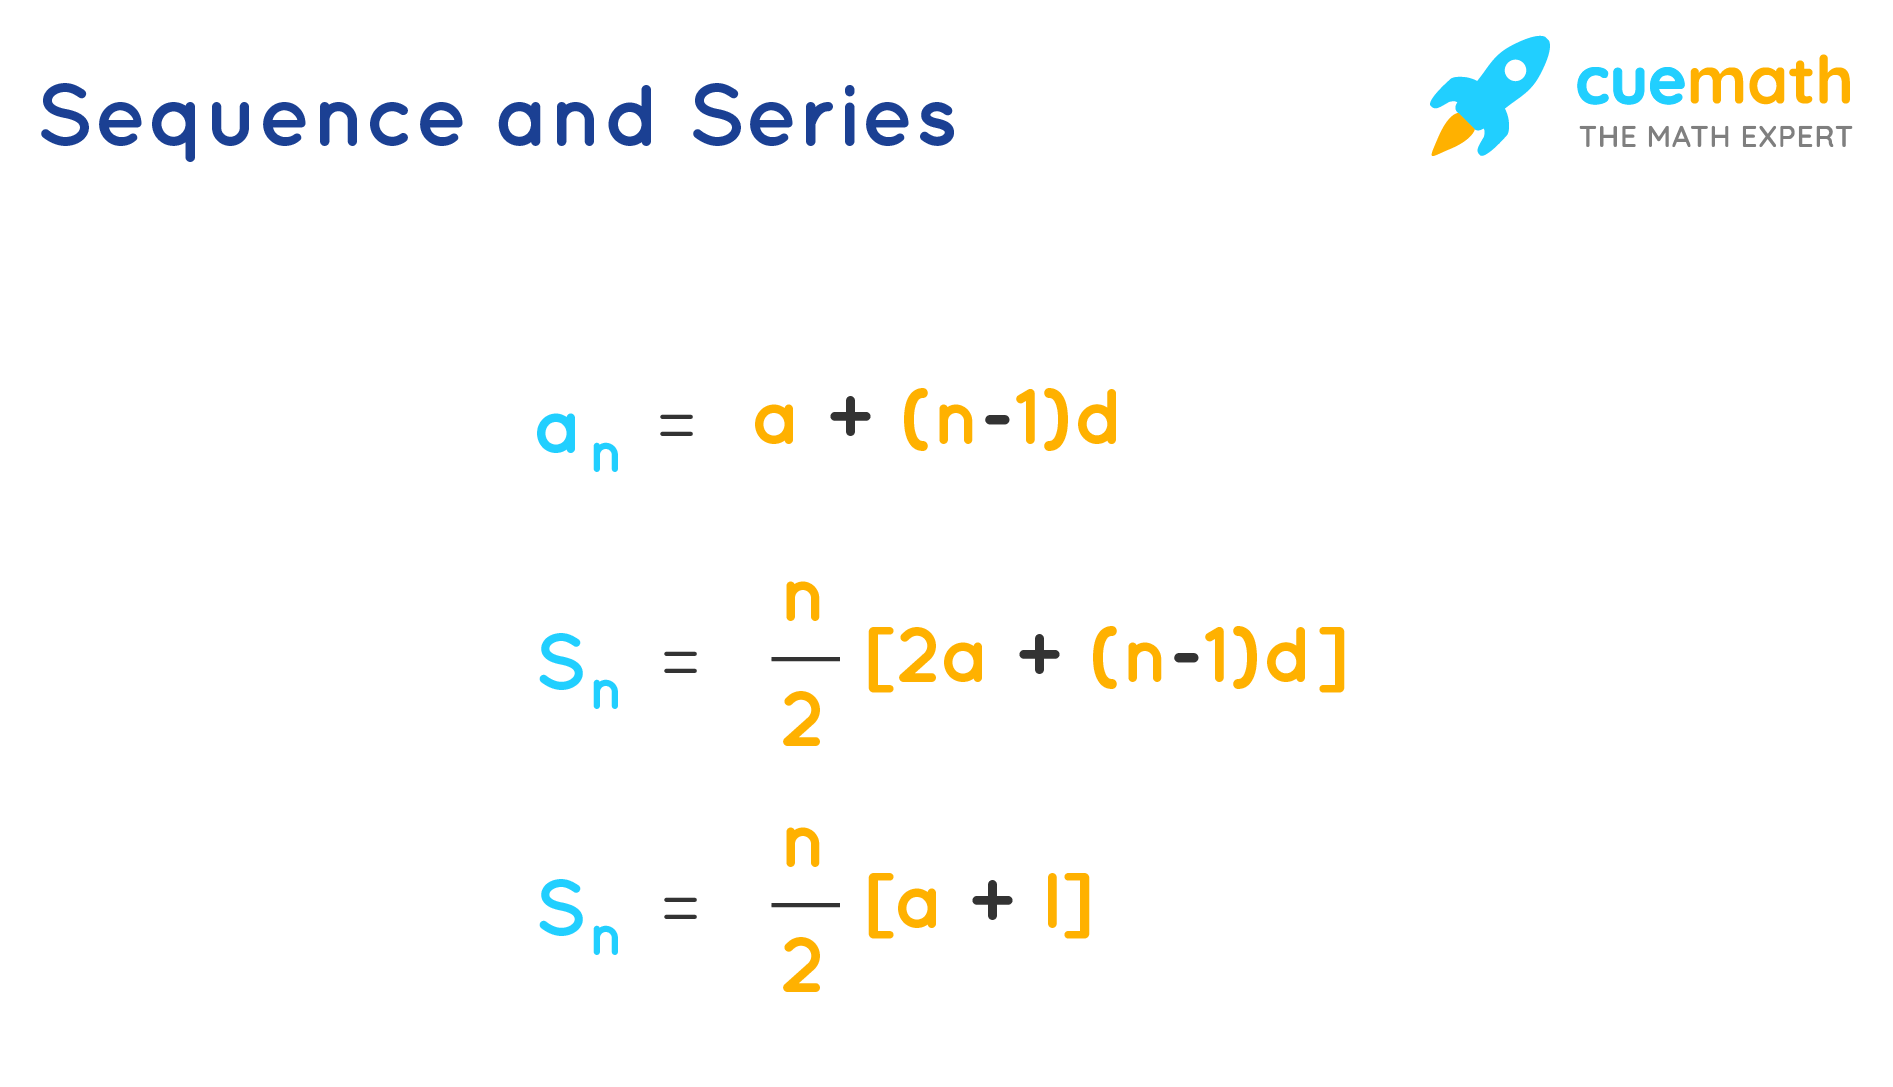 Sequence and Series Formulas